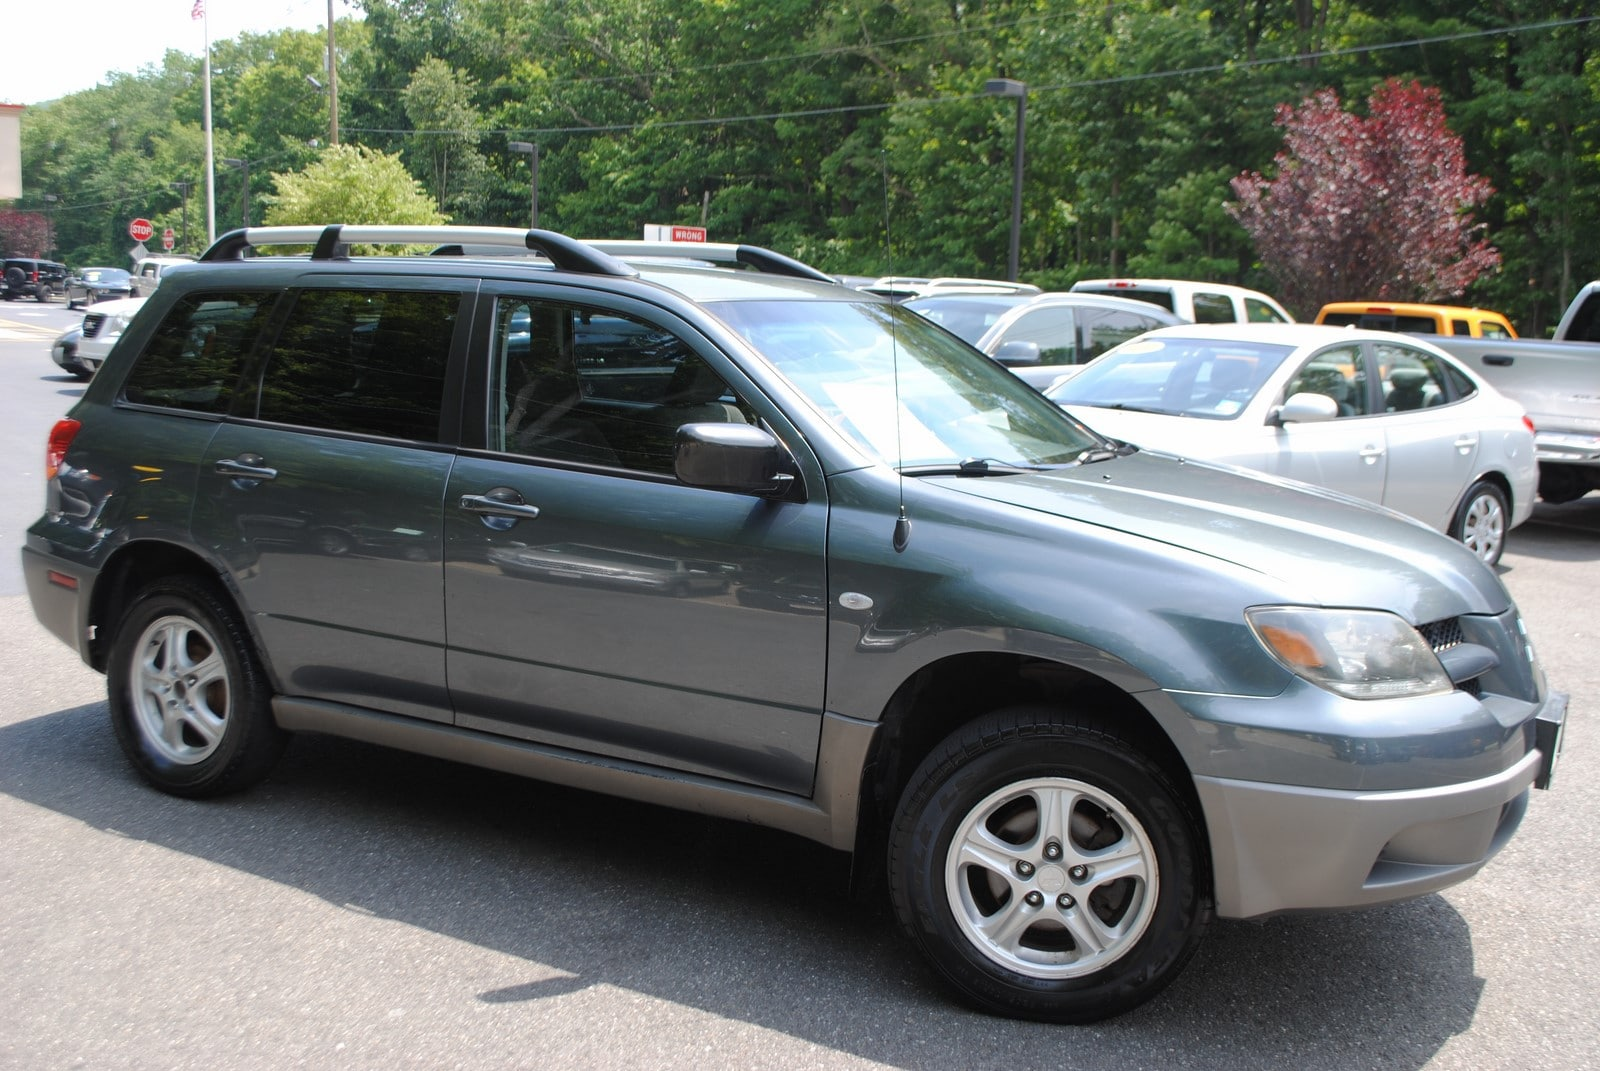 used 2003 mitsubishi outlander for sale west milford nj rh ramseycorp com Mitsubishi Outlander Sport Mitsubishi Outlander Inside